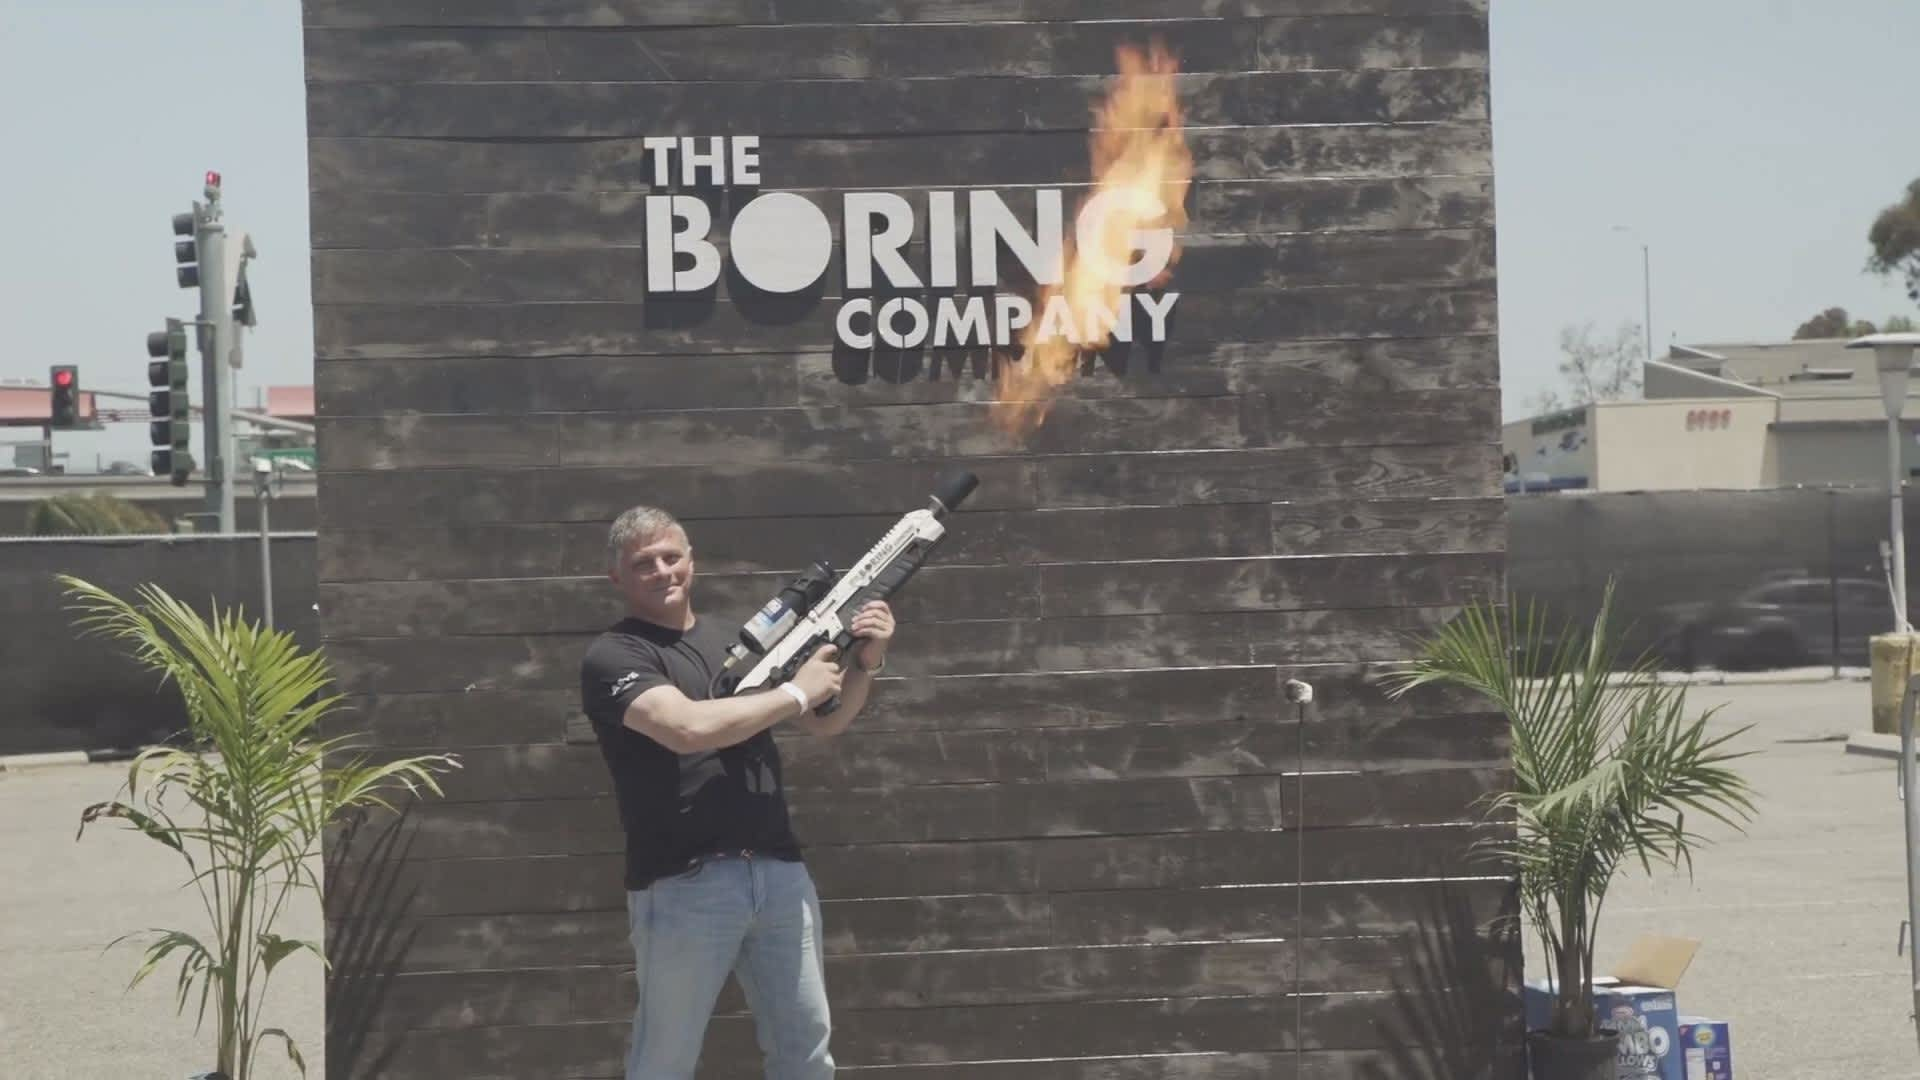 Elon Musk's flamethrower incenses New York lawmakers. State Senate passes bill banning the weapon